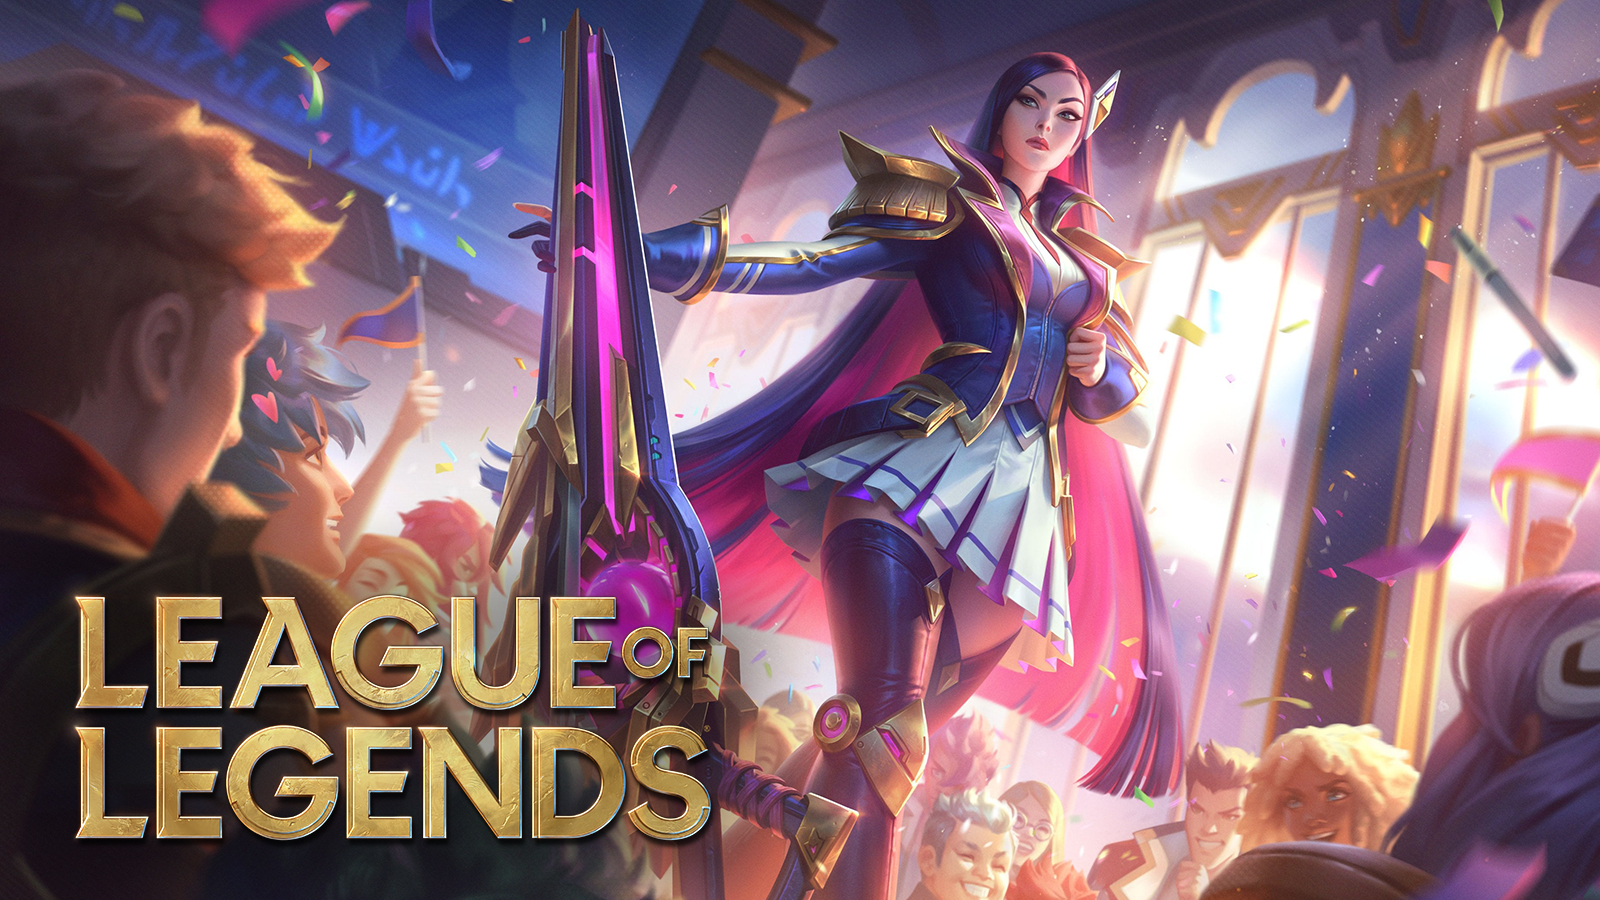 league of legends patch 11.6 early lol notes battle academia xin zhao rework caitlyn legendary